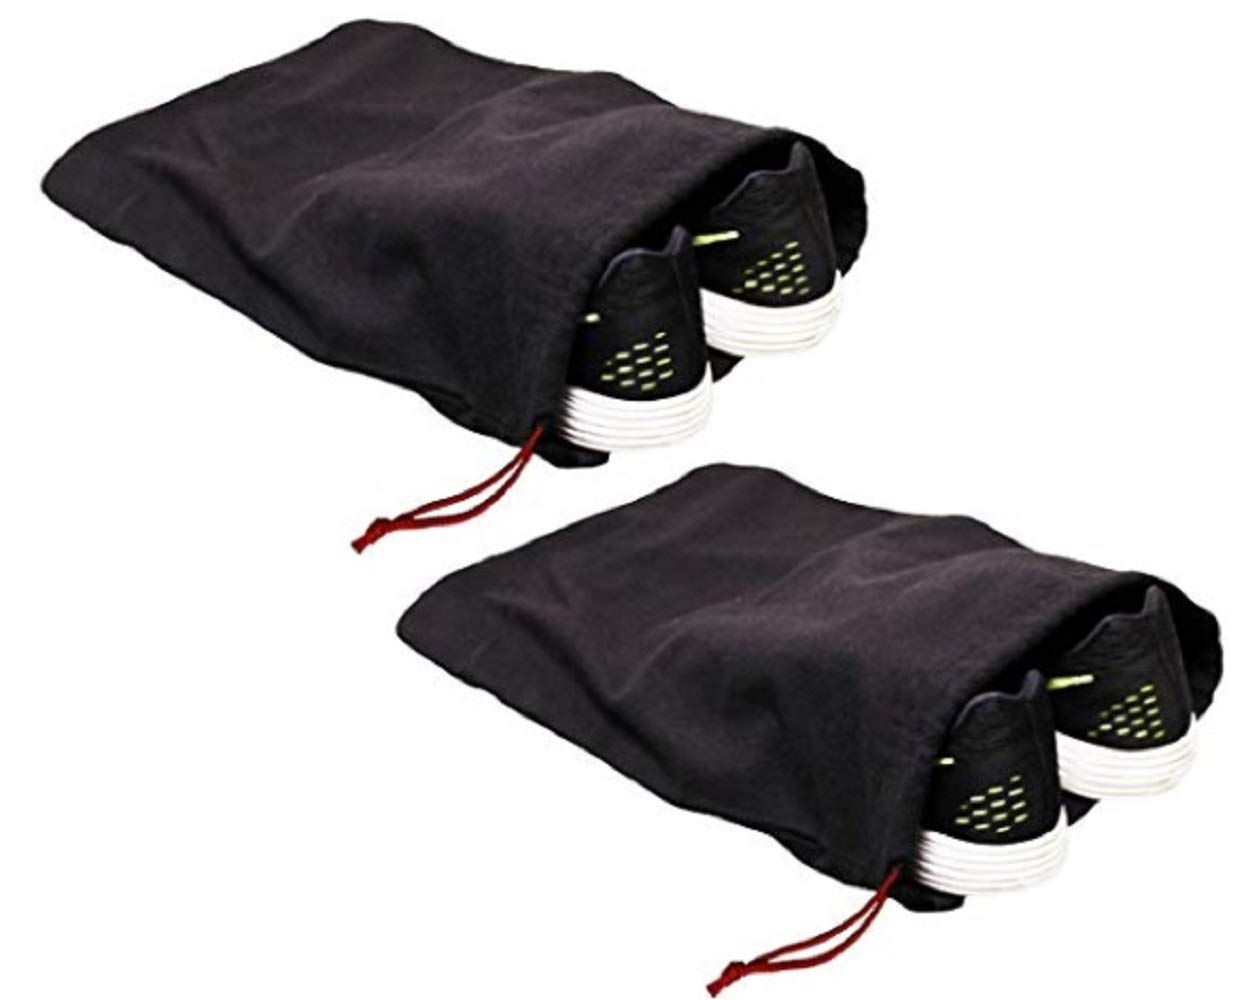 Earthwise 100% Cotton Shoe Storage Bags For Men/Women with Drawstring in Black. Made in the USA. Great for Travel. Each Black bag holds one pair of shoes. 17 inches X 12 inches (2 Pack) by Earthwise